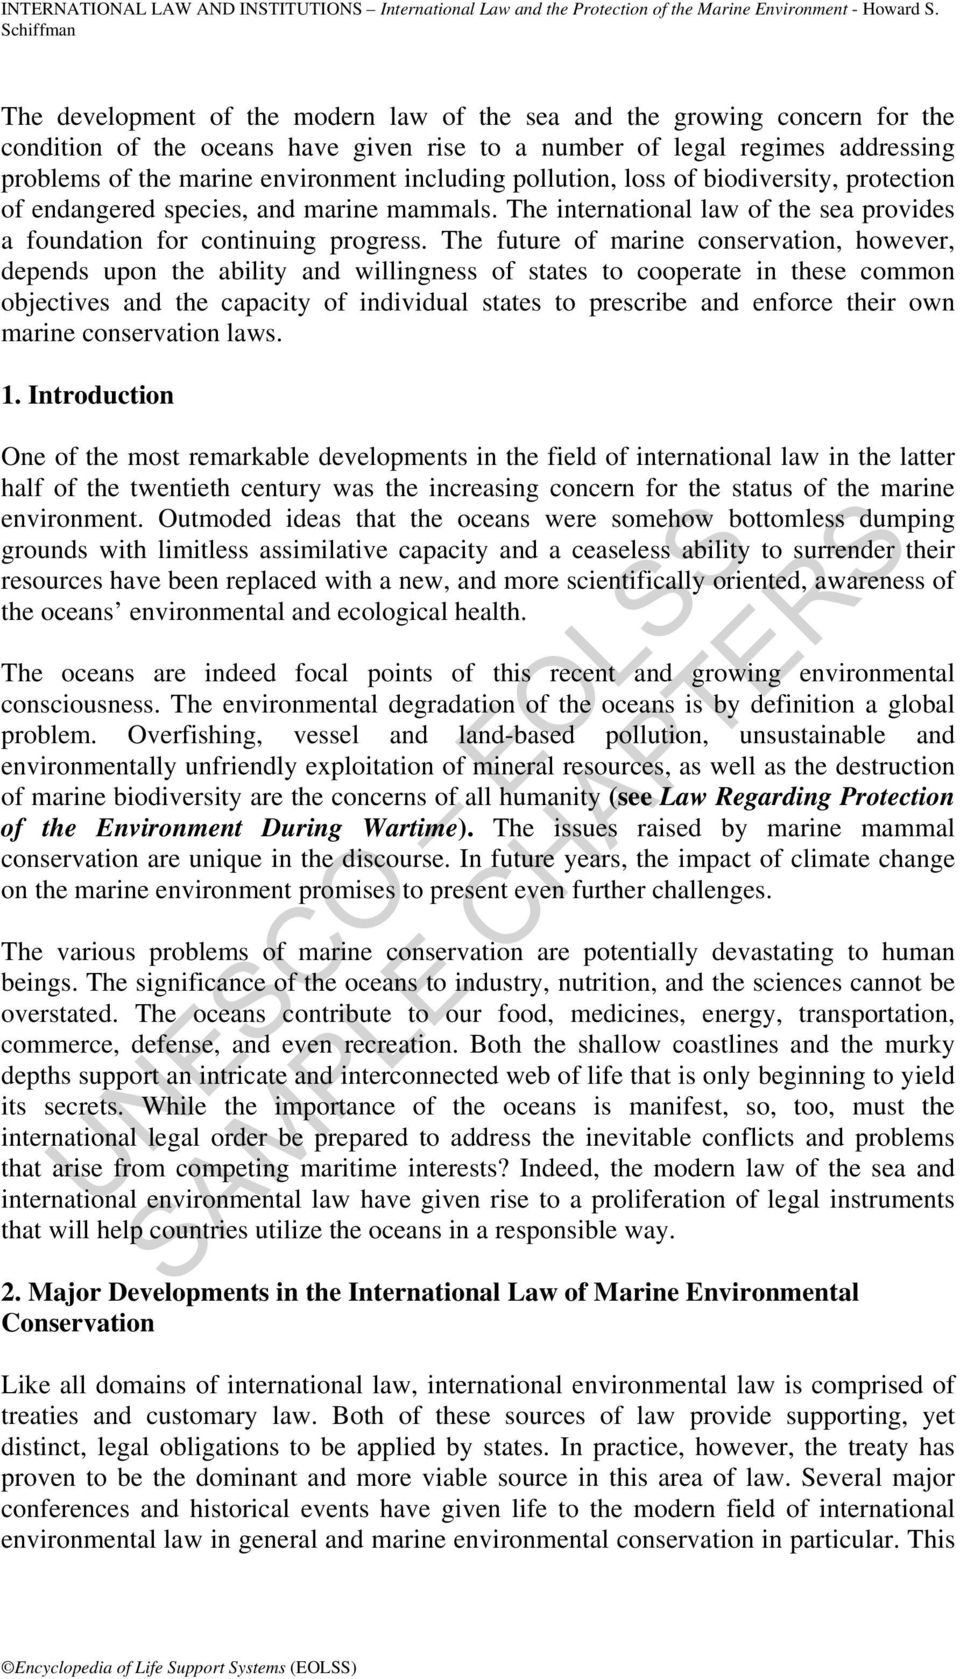 International law on the protection of common interests 15